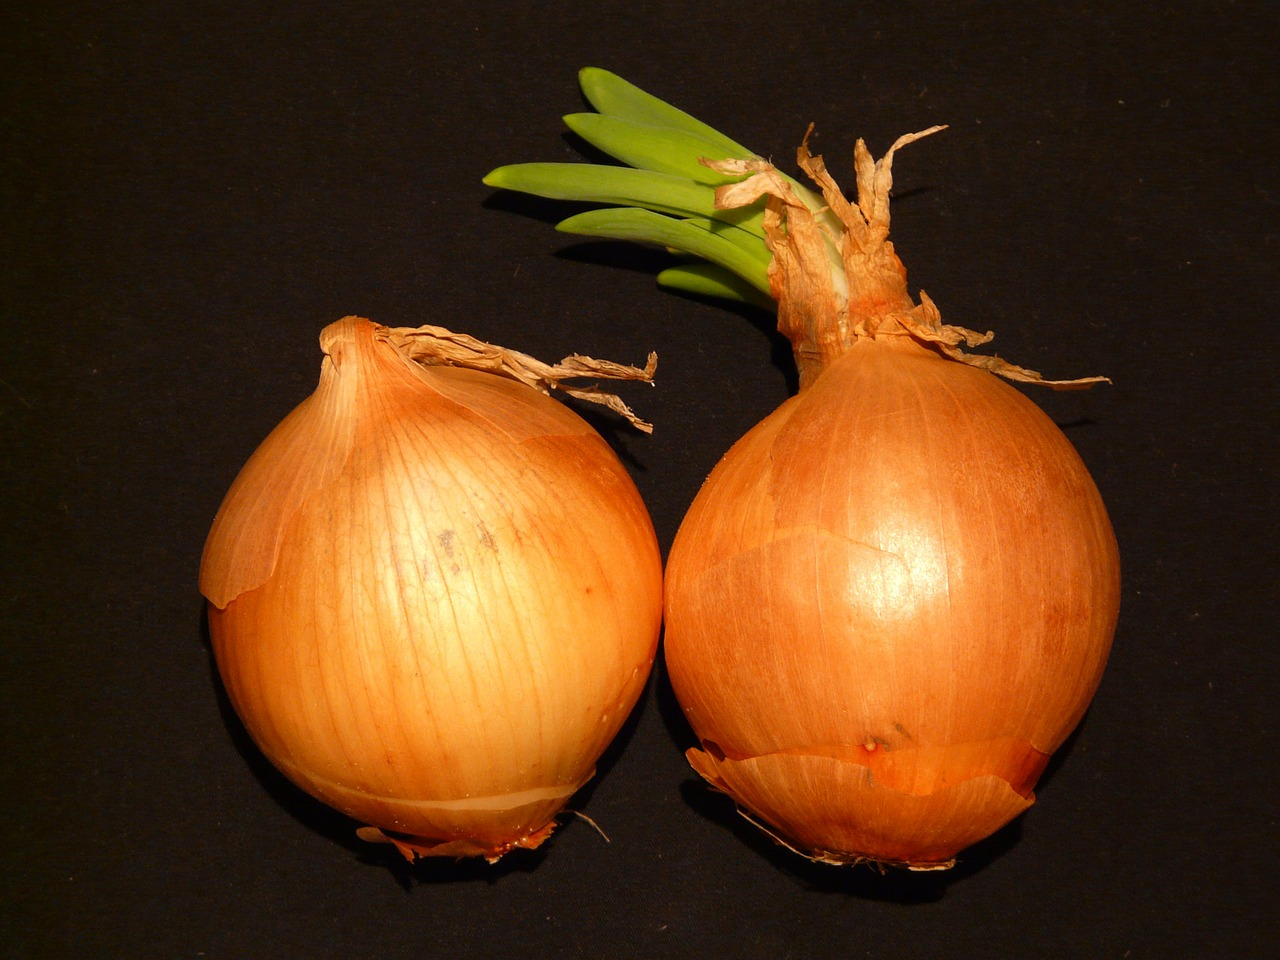 onion vegetables sharp free photo